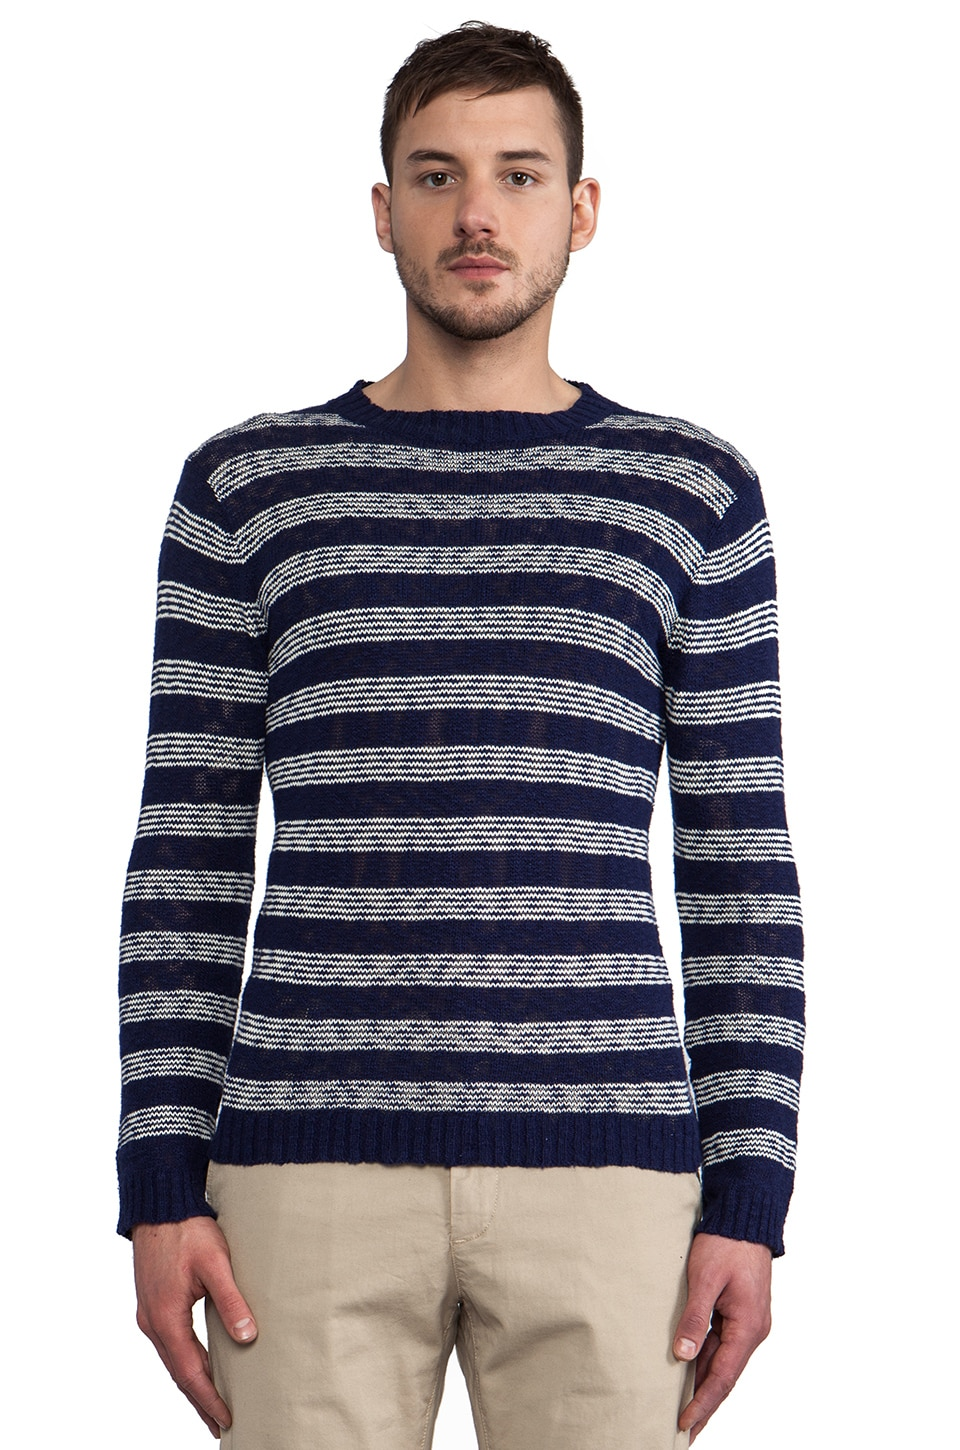 GANT Rugger The Slubber Pullover in Navy Stripe